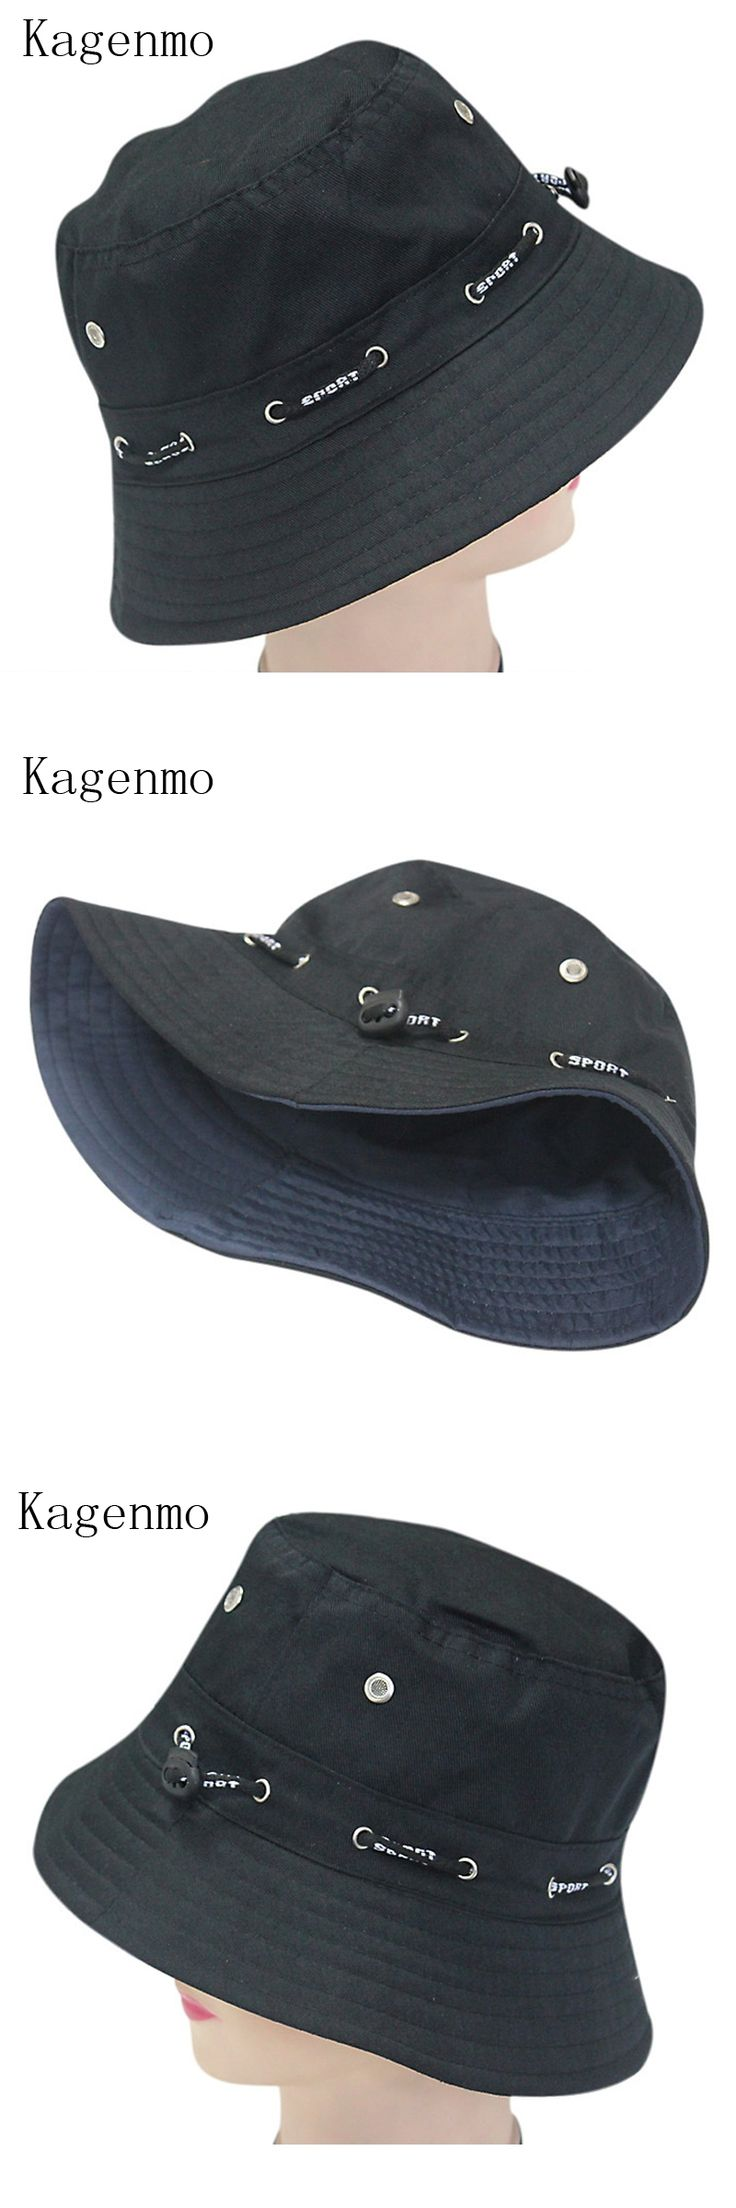 Kagenmo Campus Style lady sun cap hat Fashion outside shopping cool hats Camping caps waterproof 12color 1pcs